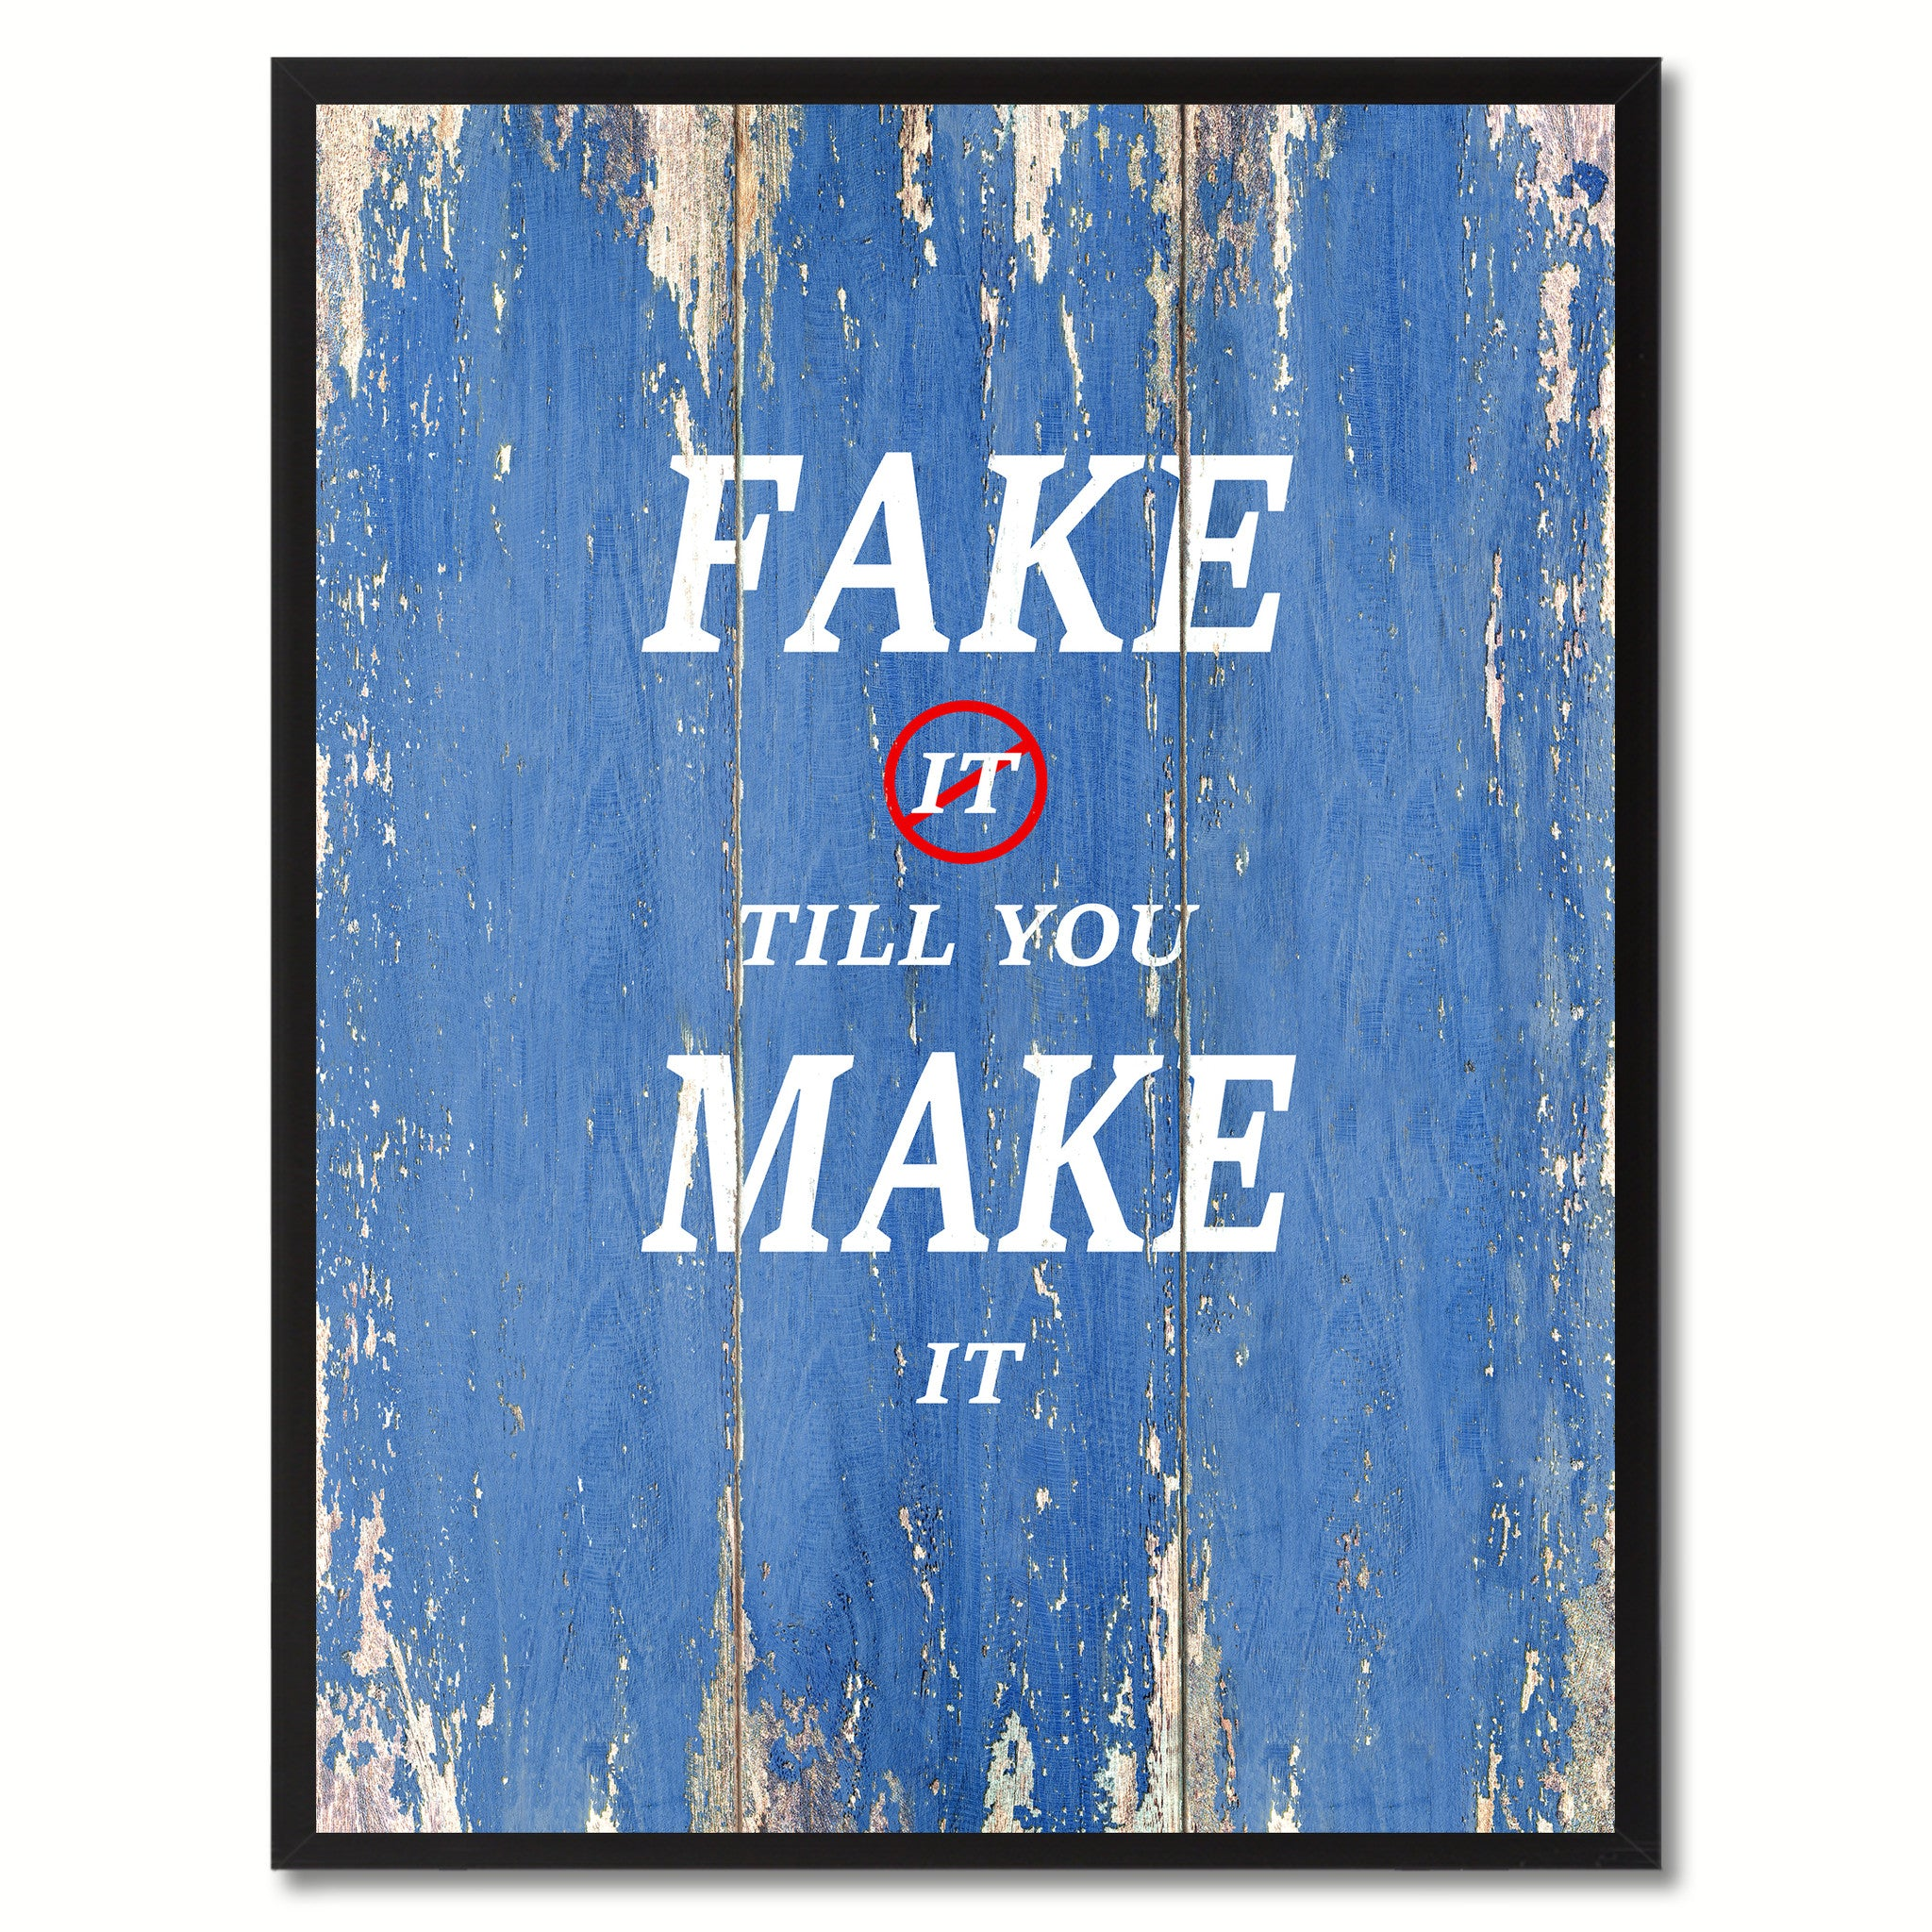 Fake It Till You Make It Saying Canvas Print, Black Picture Frame Home Decor Wall Art Gifts